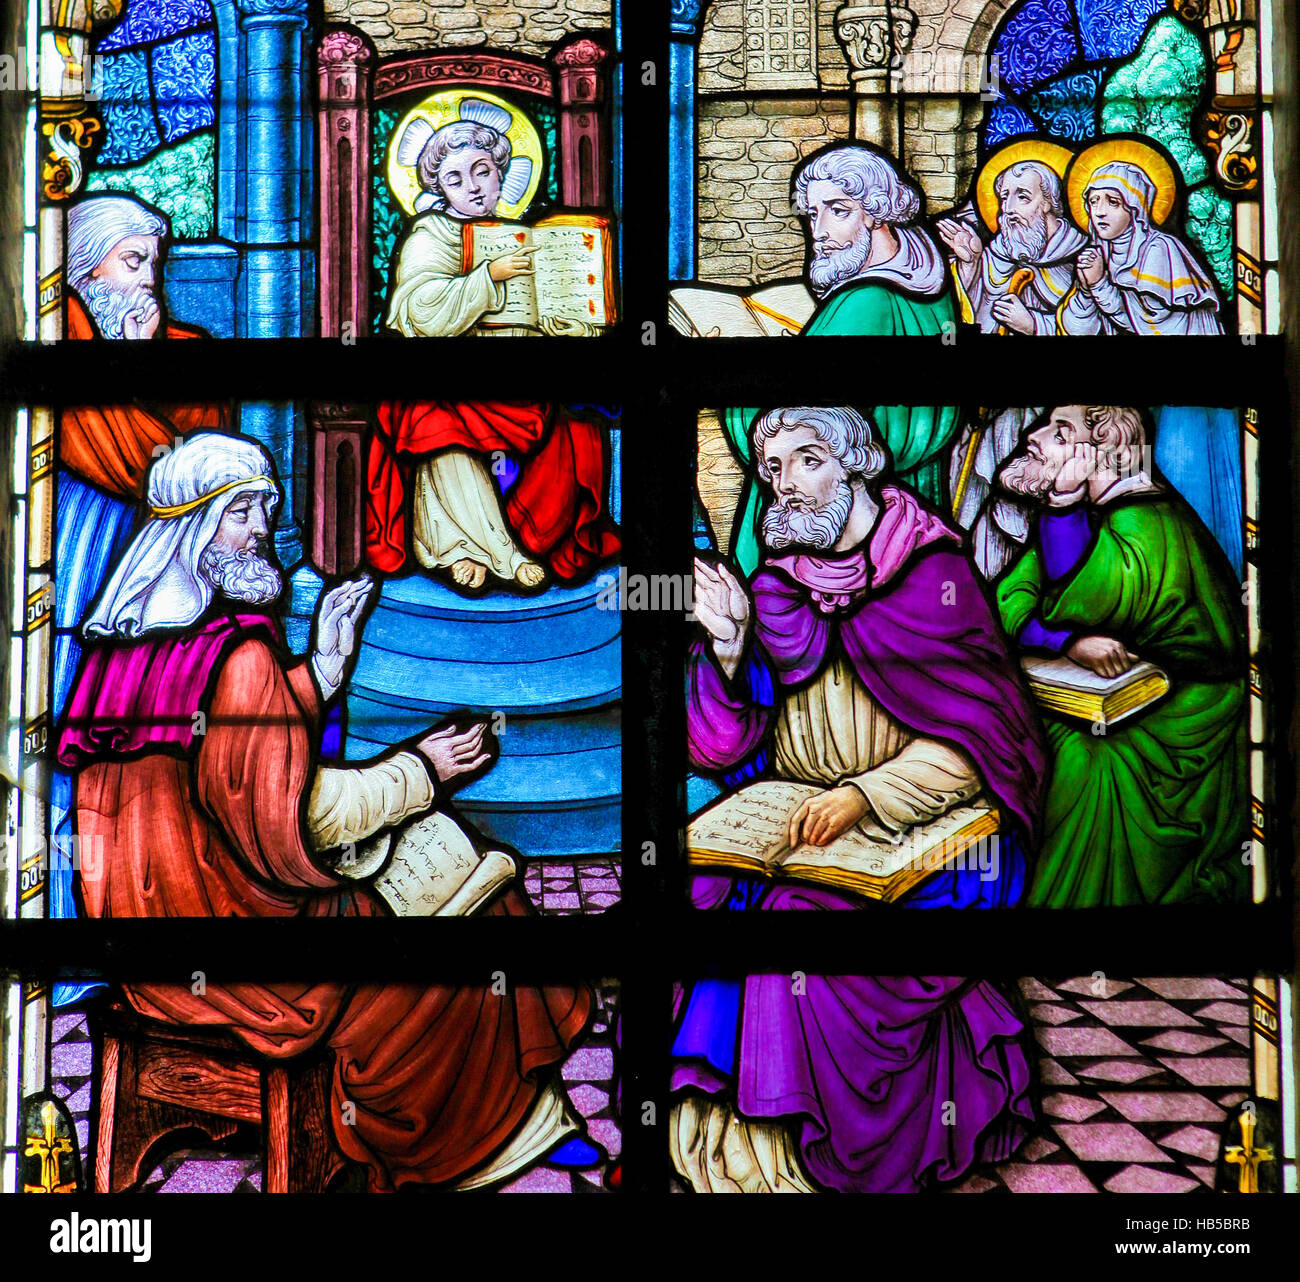 The Finding in the Temple, also called Christ among the Doctors, on a stained glass in Werchter, Belgium. - Stock Image